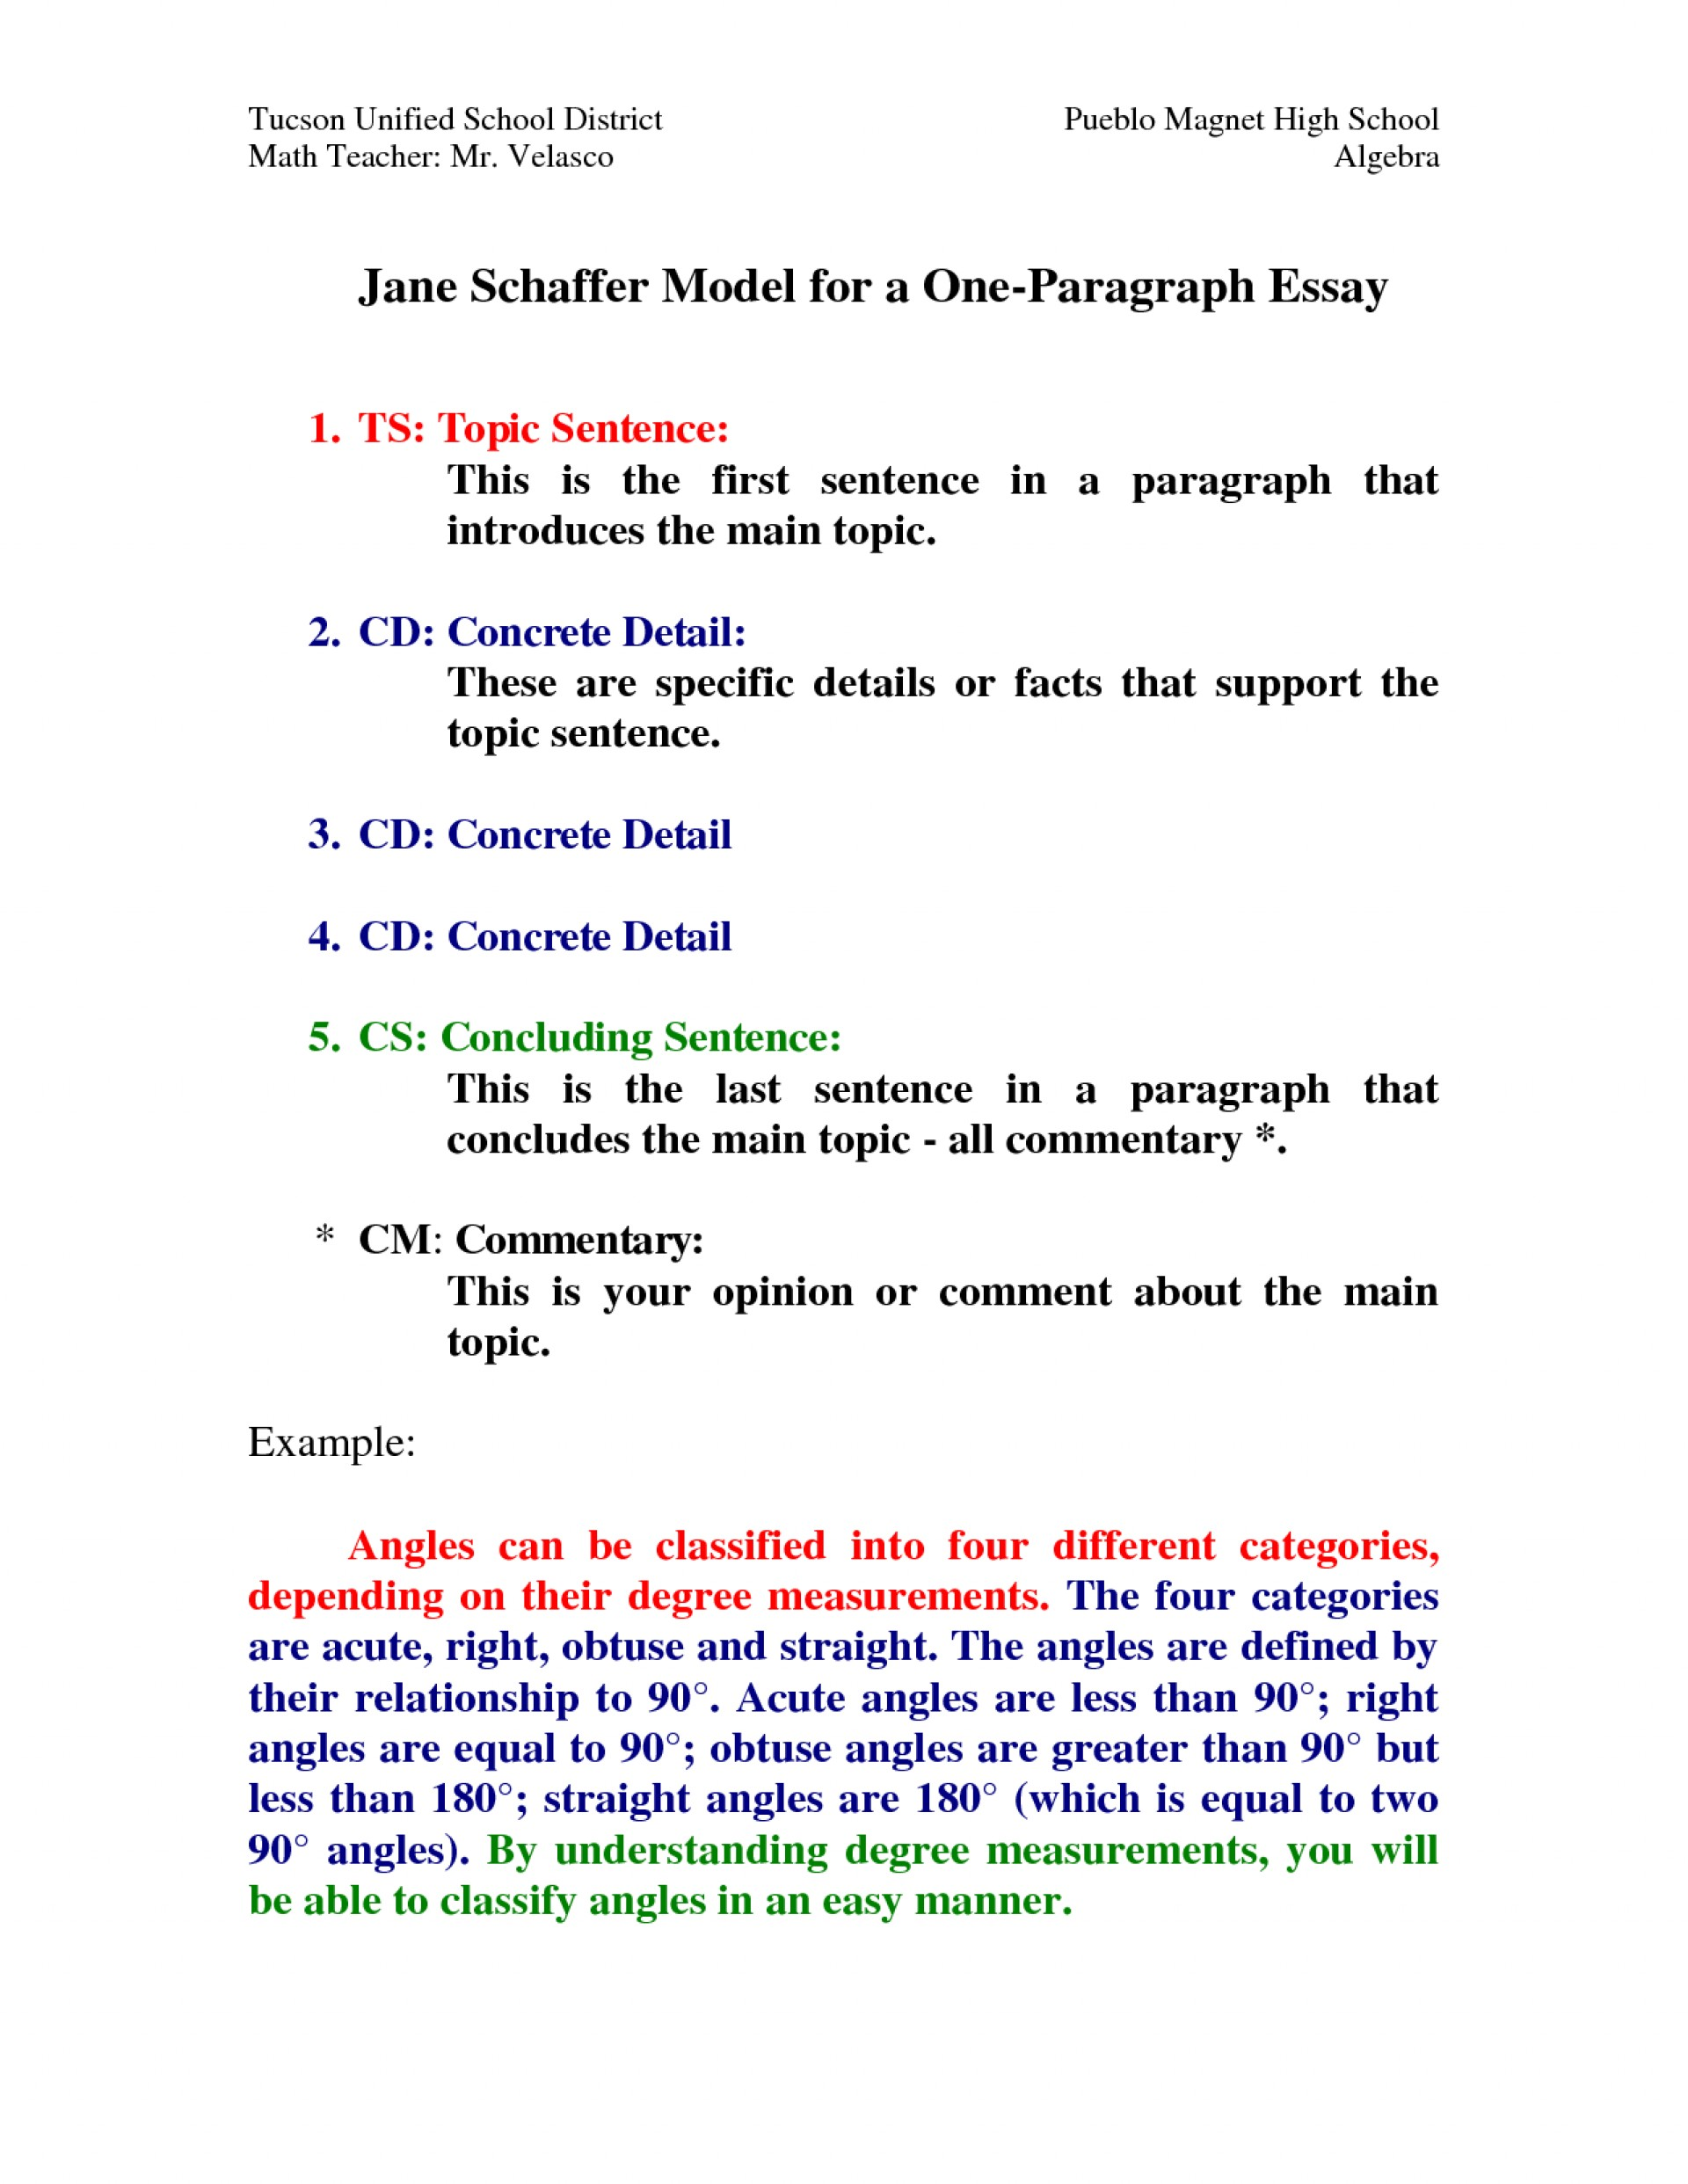 001 Essay Example One Awesome Paragraph About Dwarfism Topics 1920